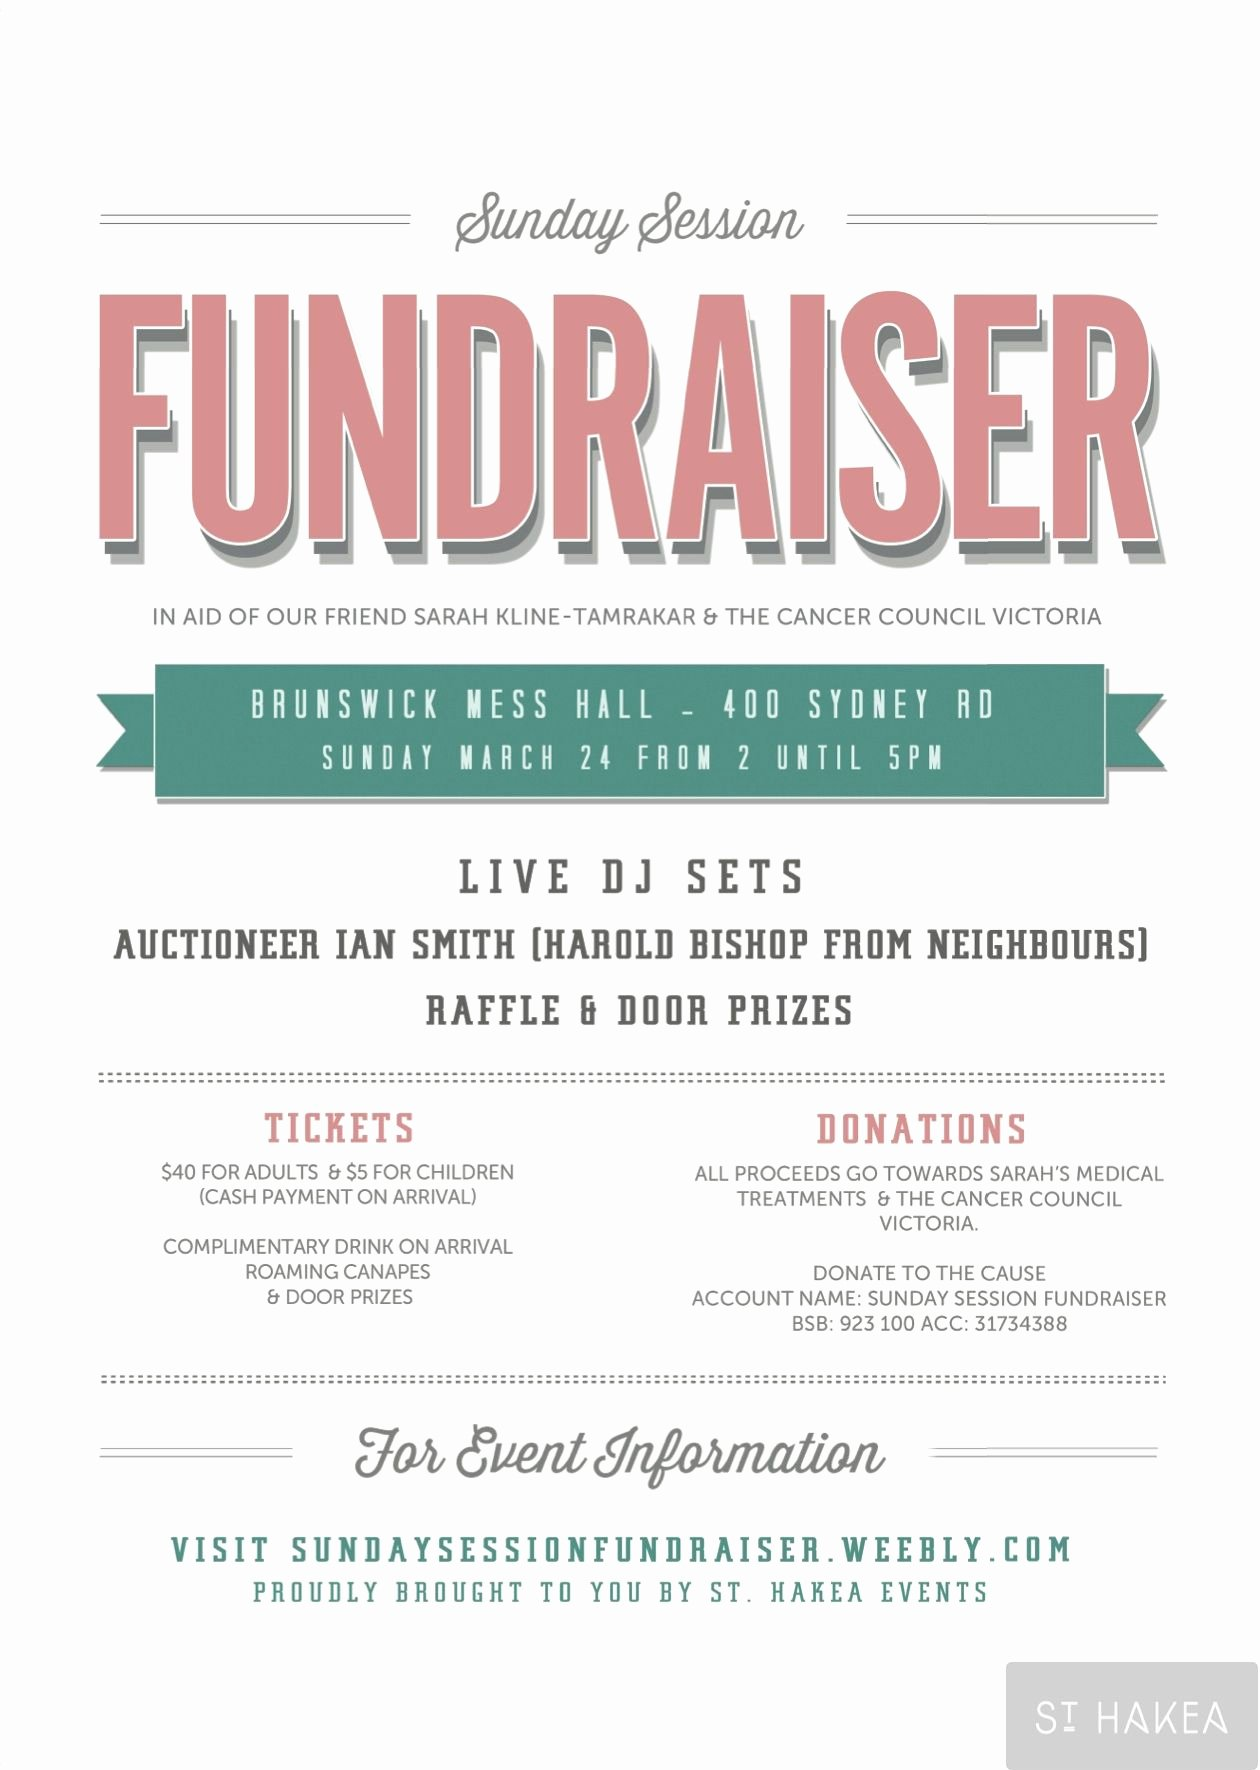 Fundraiser Flyer Template Free Elegant Sunday Session Fundraiser event Flyer Proudly Bought to